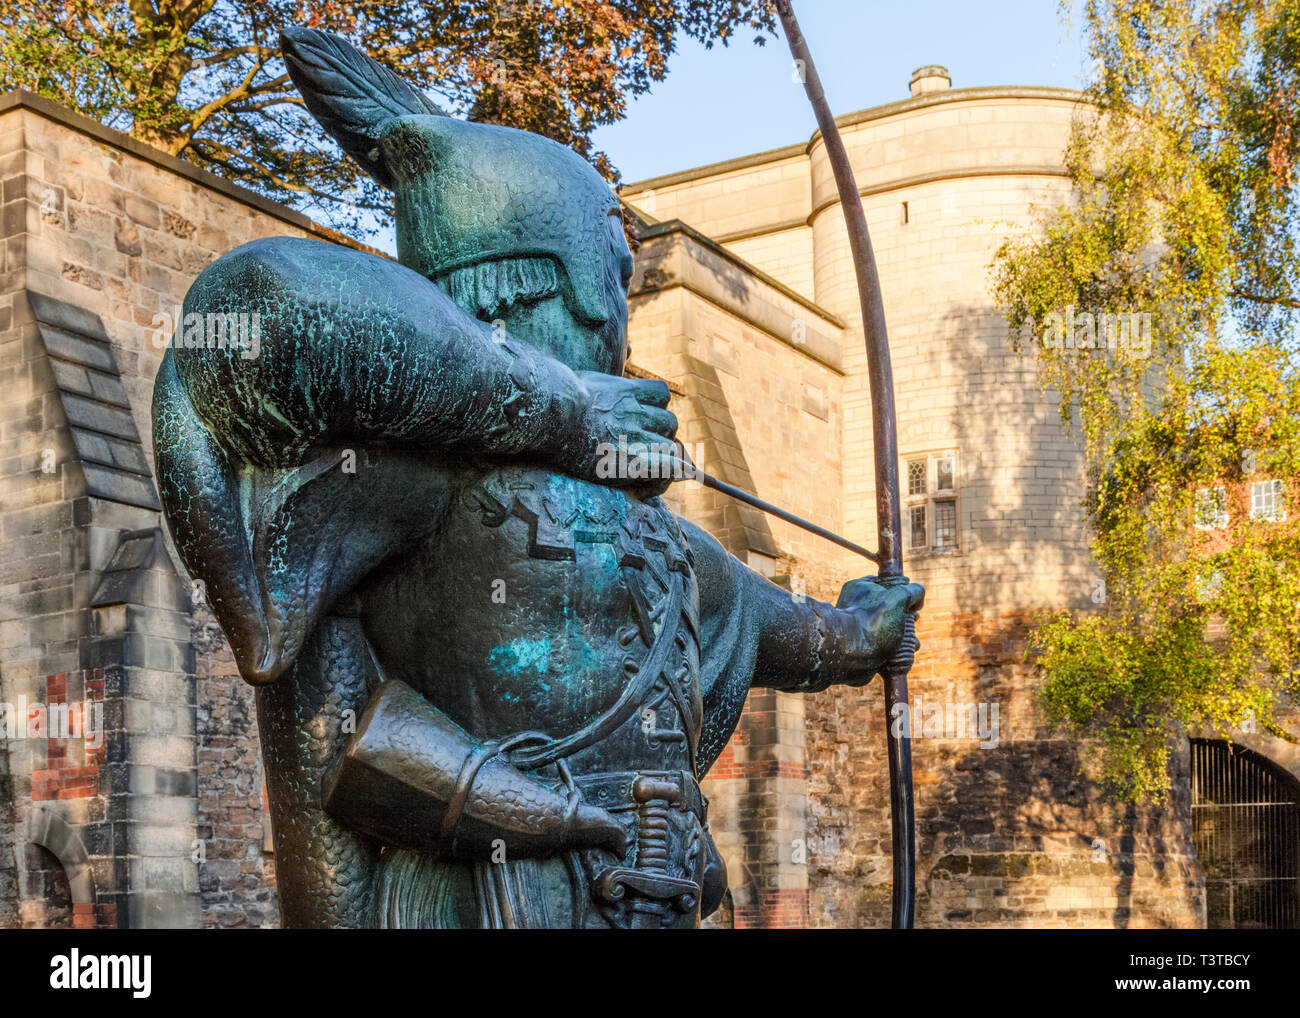 Robin Hood statue at Nottingham Castle, Nottingham, England, UK